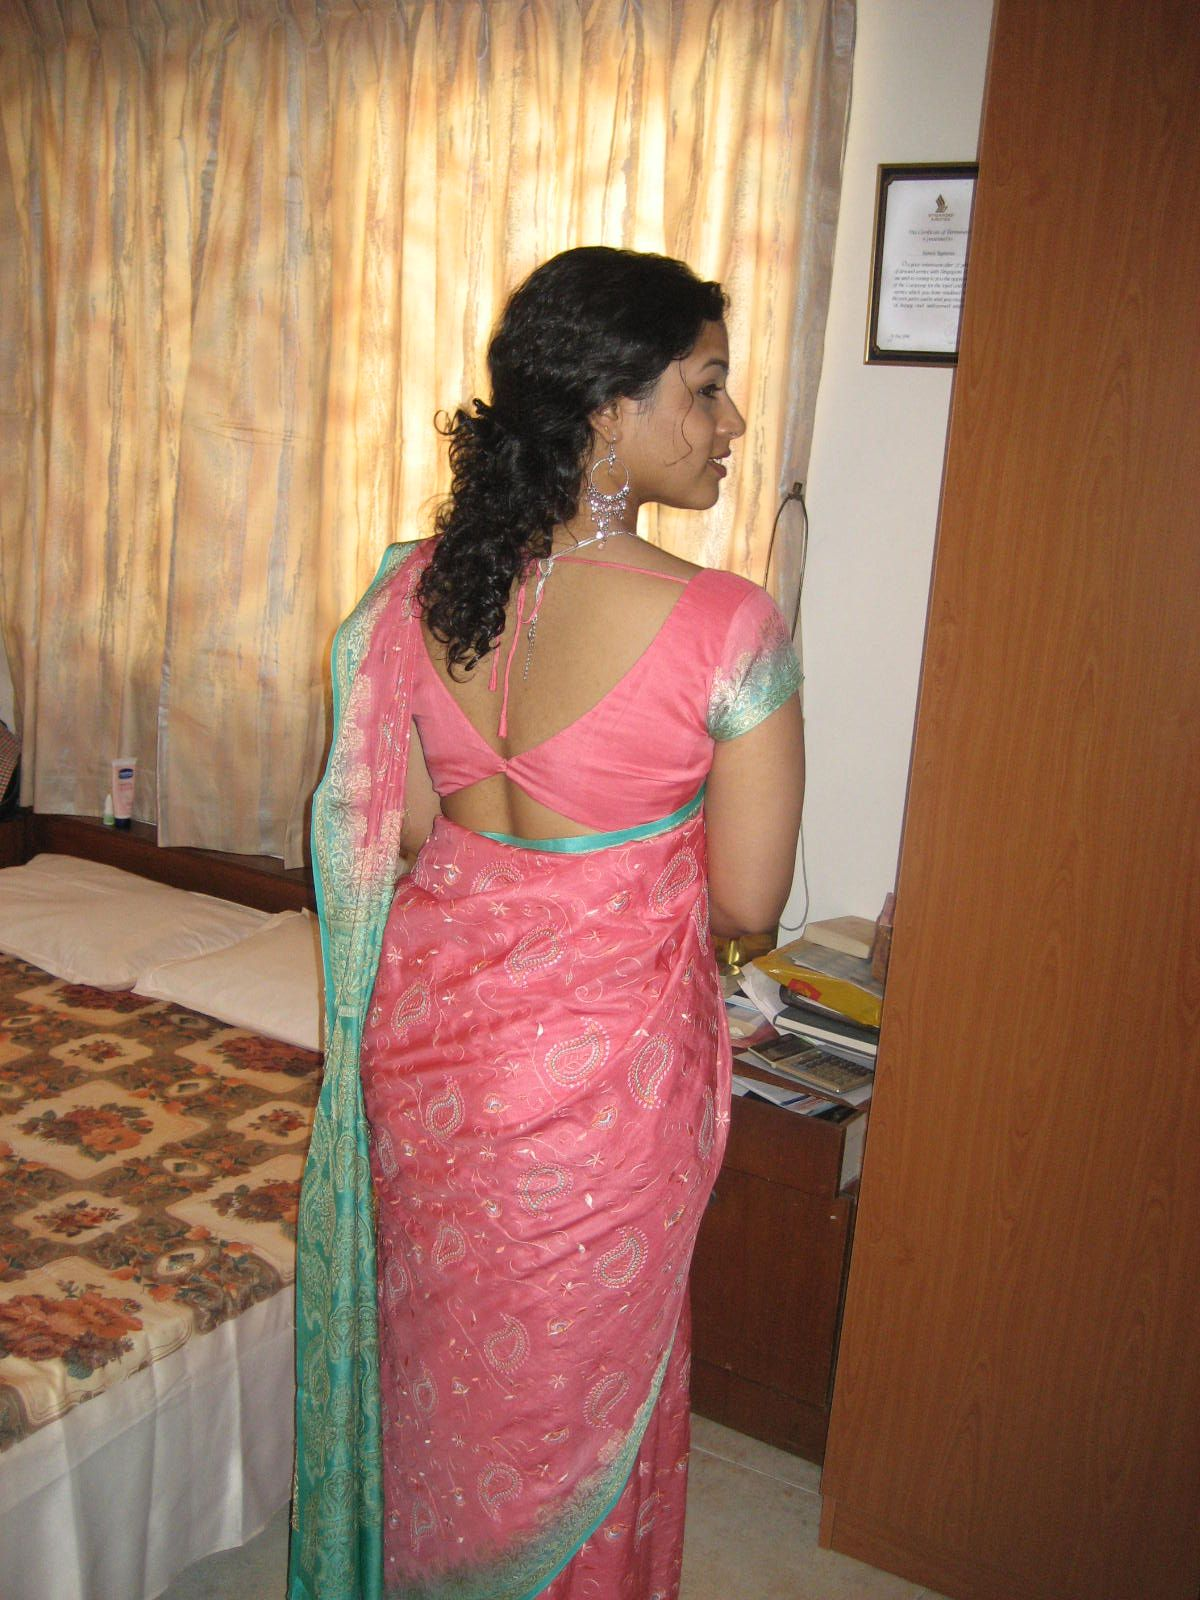 Beauty Of Sri Lanka Lanka Girl Wearing Sexy Sareewooooowwwww-6349